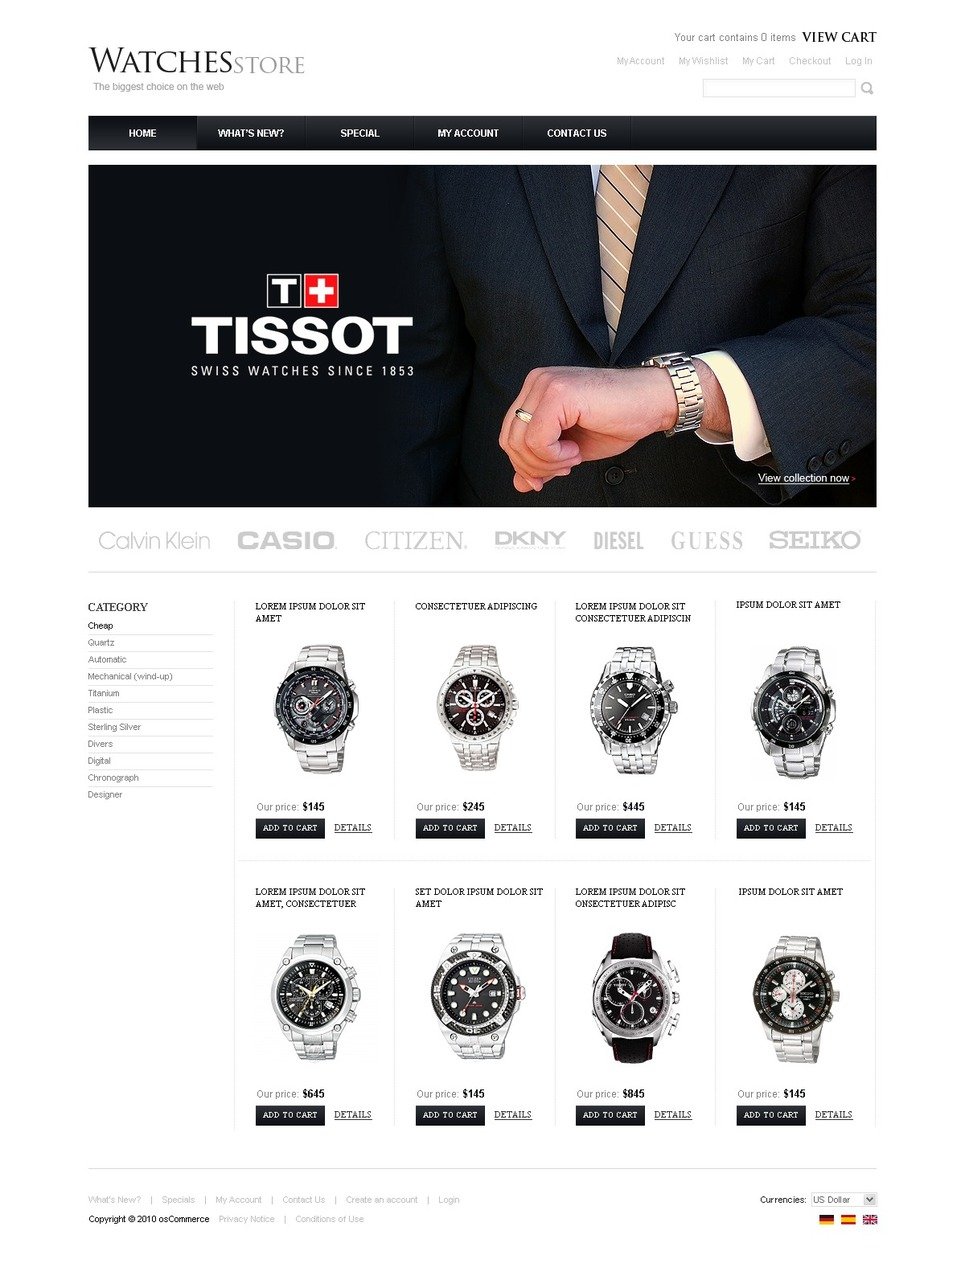 Perfect Watch Store Template for your Business